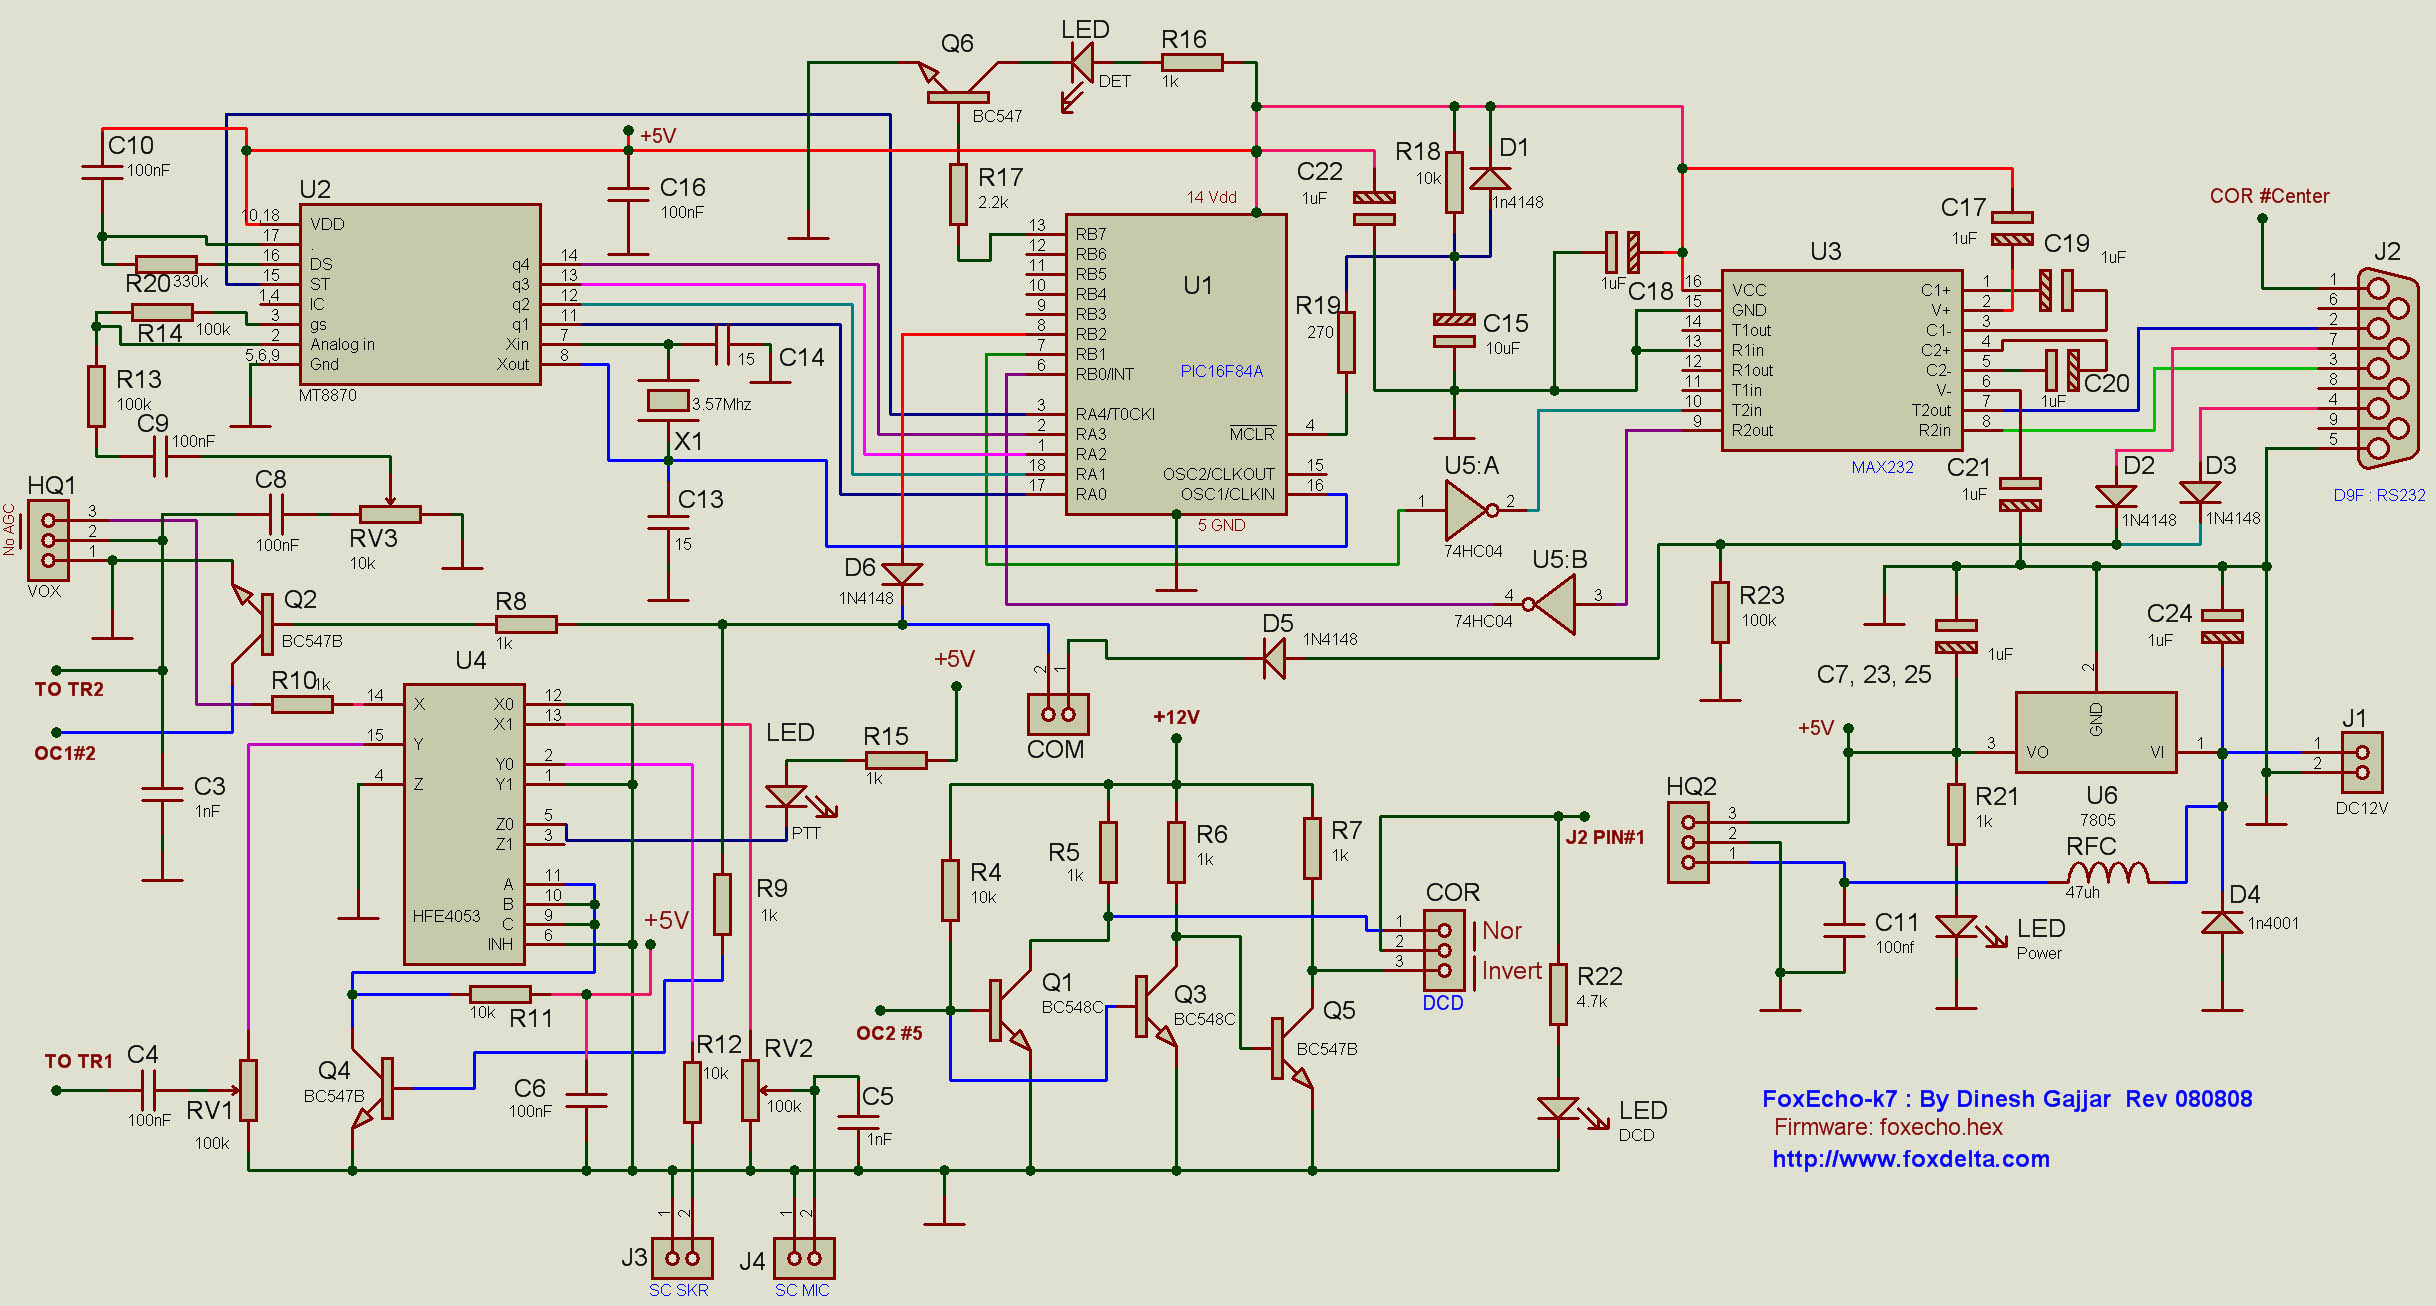 Foxecho k7 pic16f84a echolink pcradio interface schematic jpg pooptronica